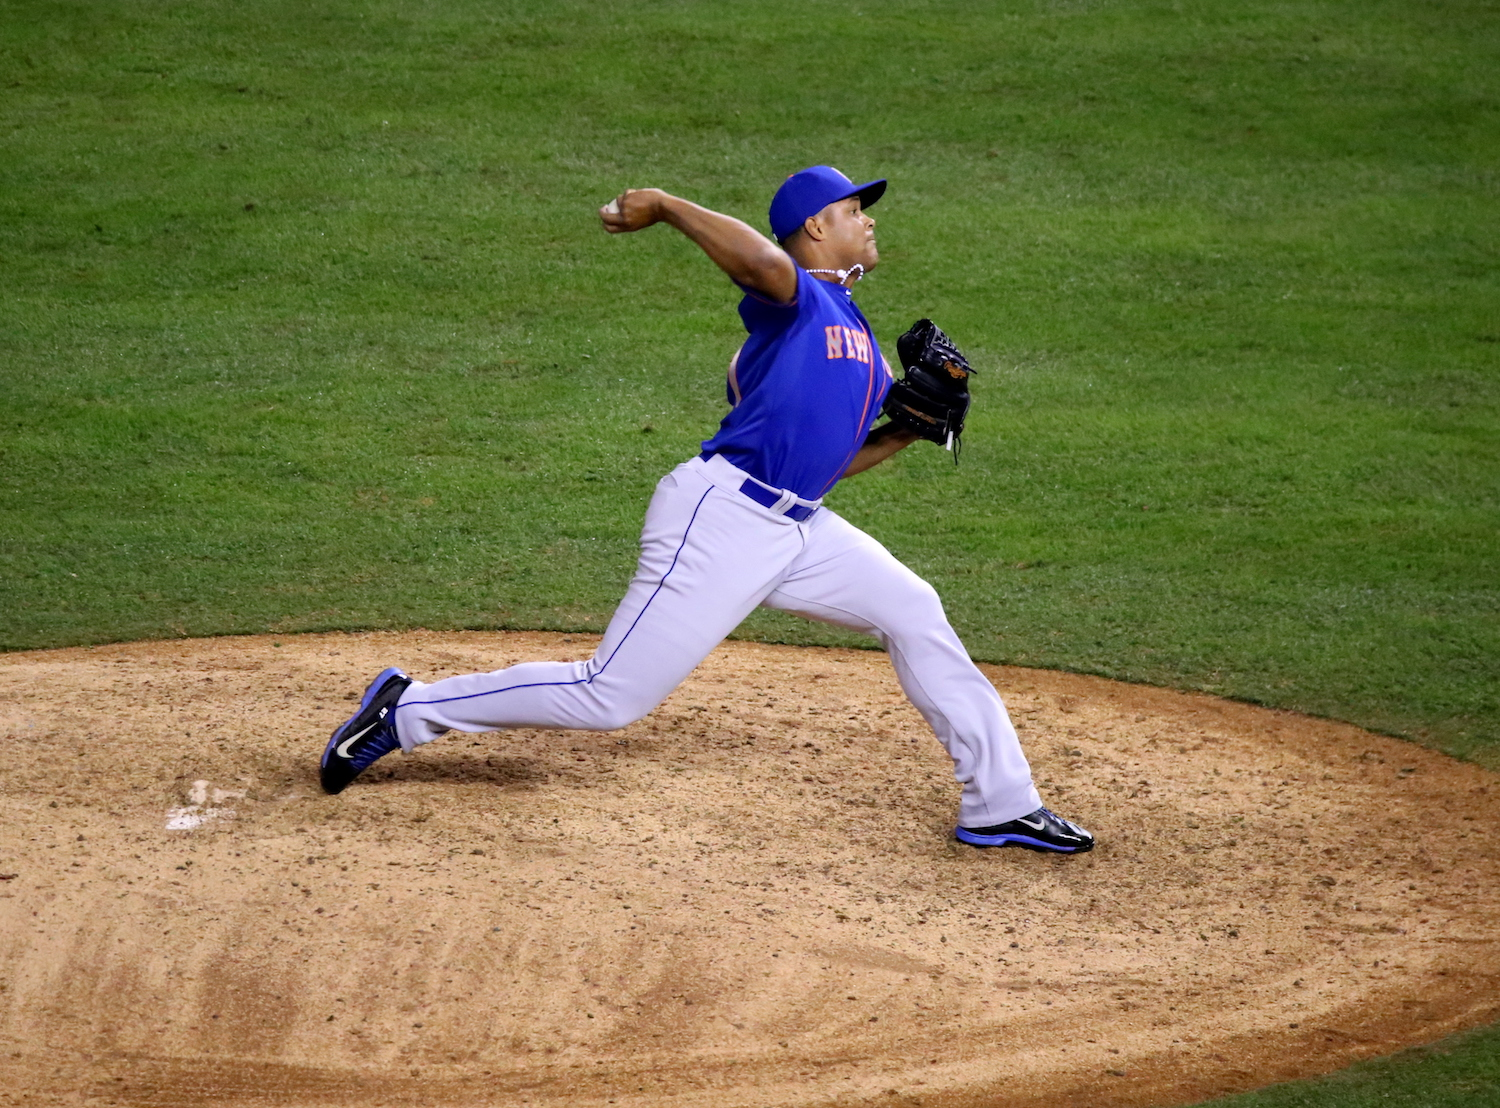 Jeurys Familia Pitching in Game 1 of the 2015 World Series ©2015  Arturo Pardavila III